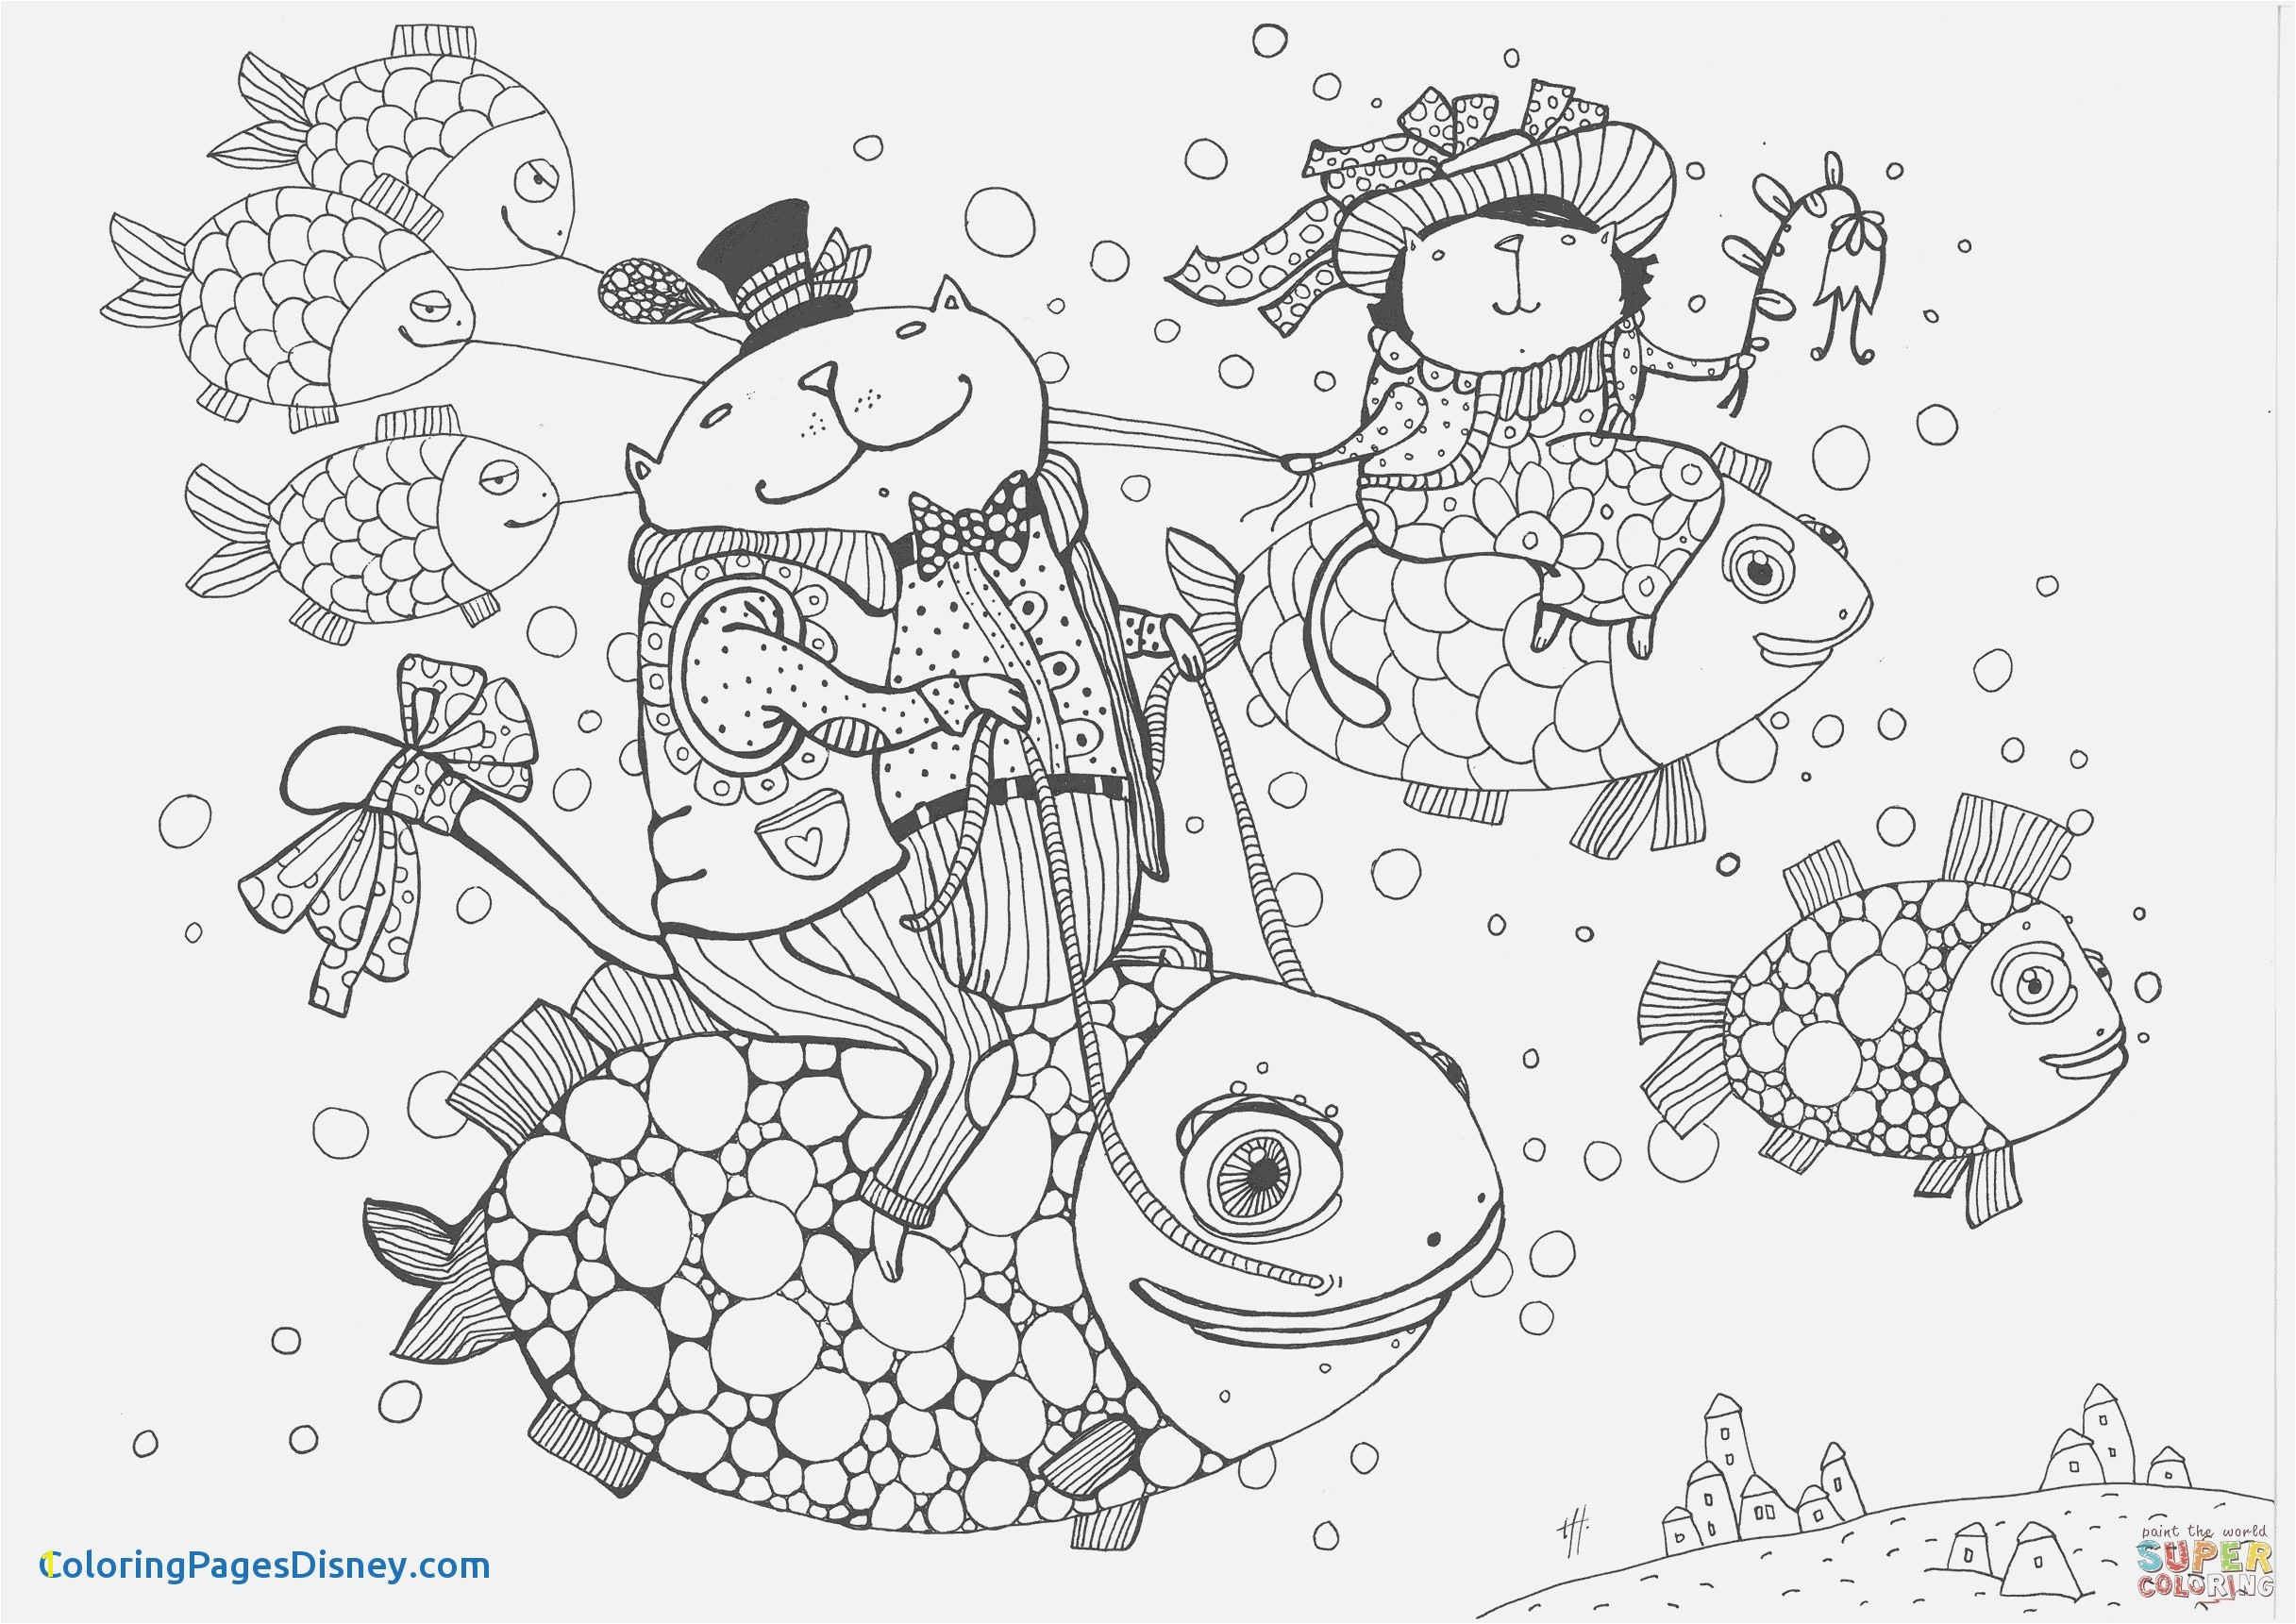 Best Printable Coloring Pages Beautiful Autosport Coloring Pages Elegant Cool Printable Coloring Pages Fresh Best